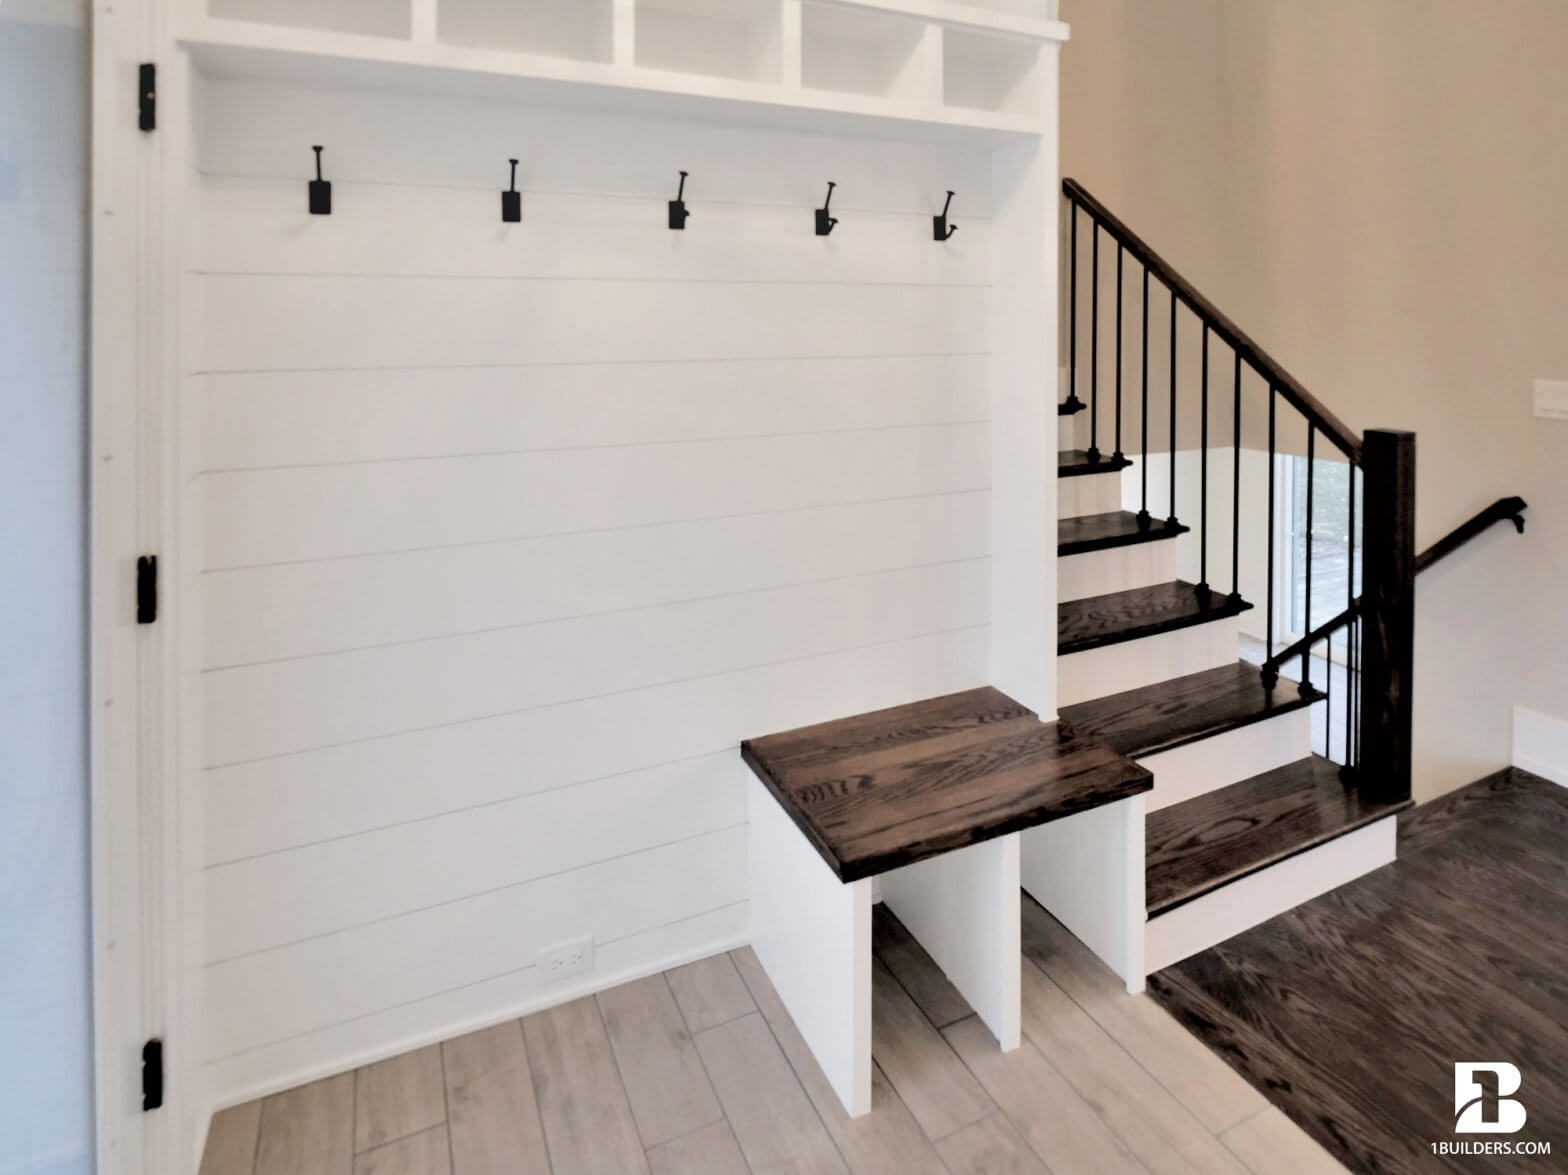 magnificent mudroom built by home remodeling contractor